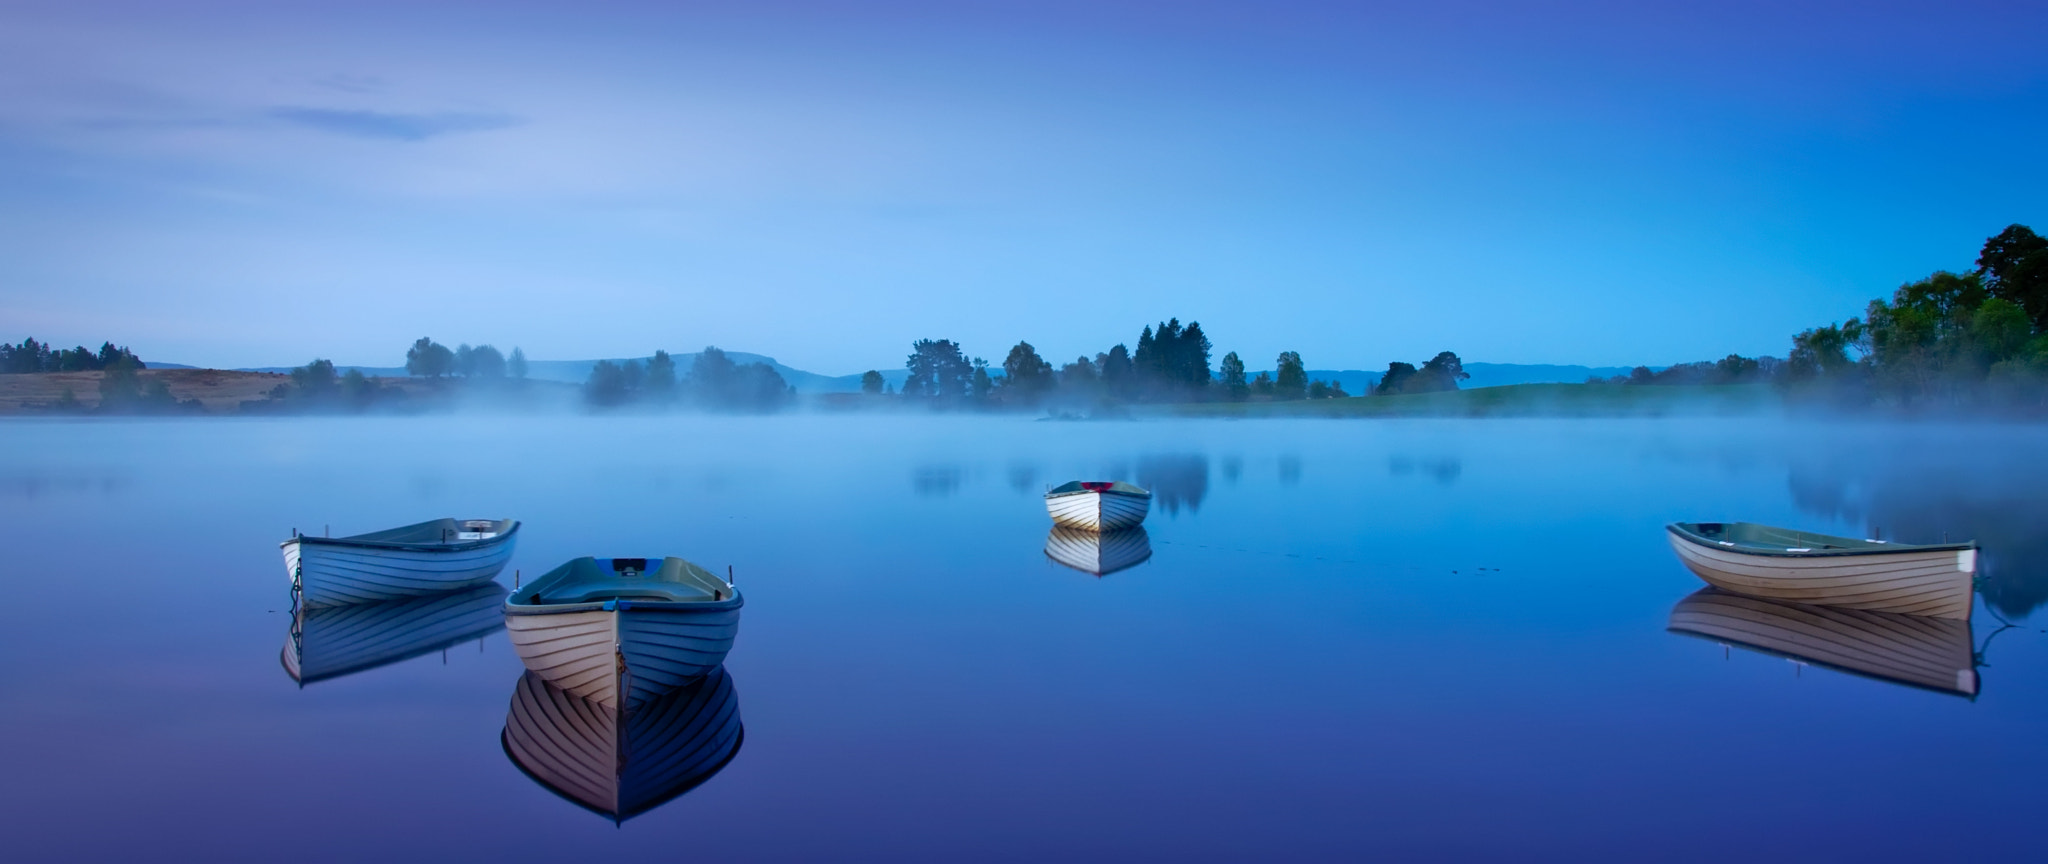 Photograph Moonlight blue... by David Mould on 500px